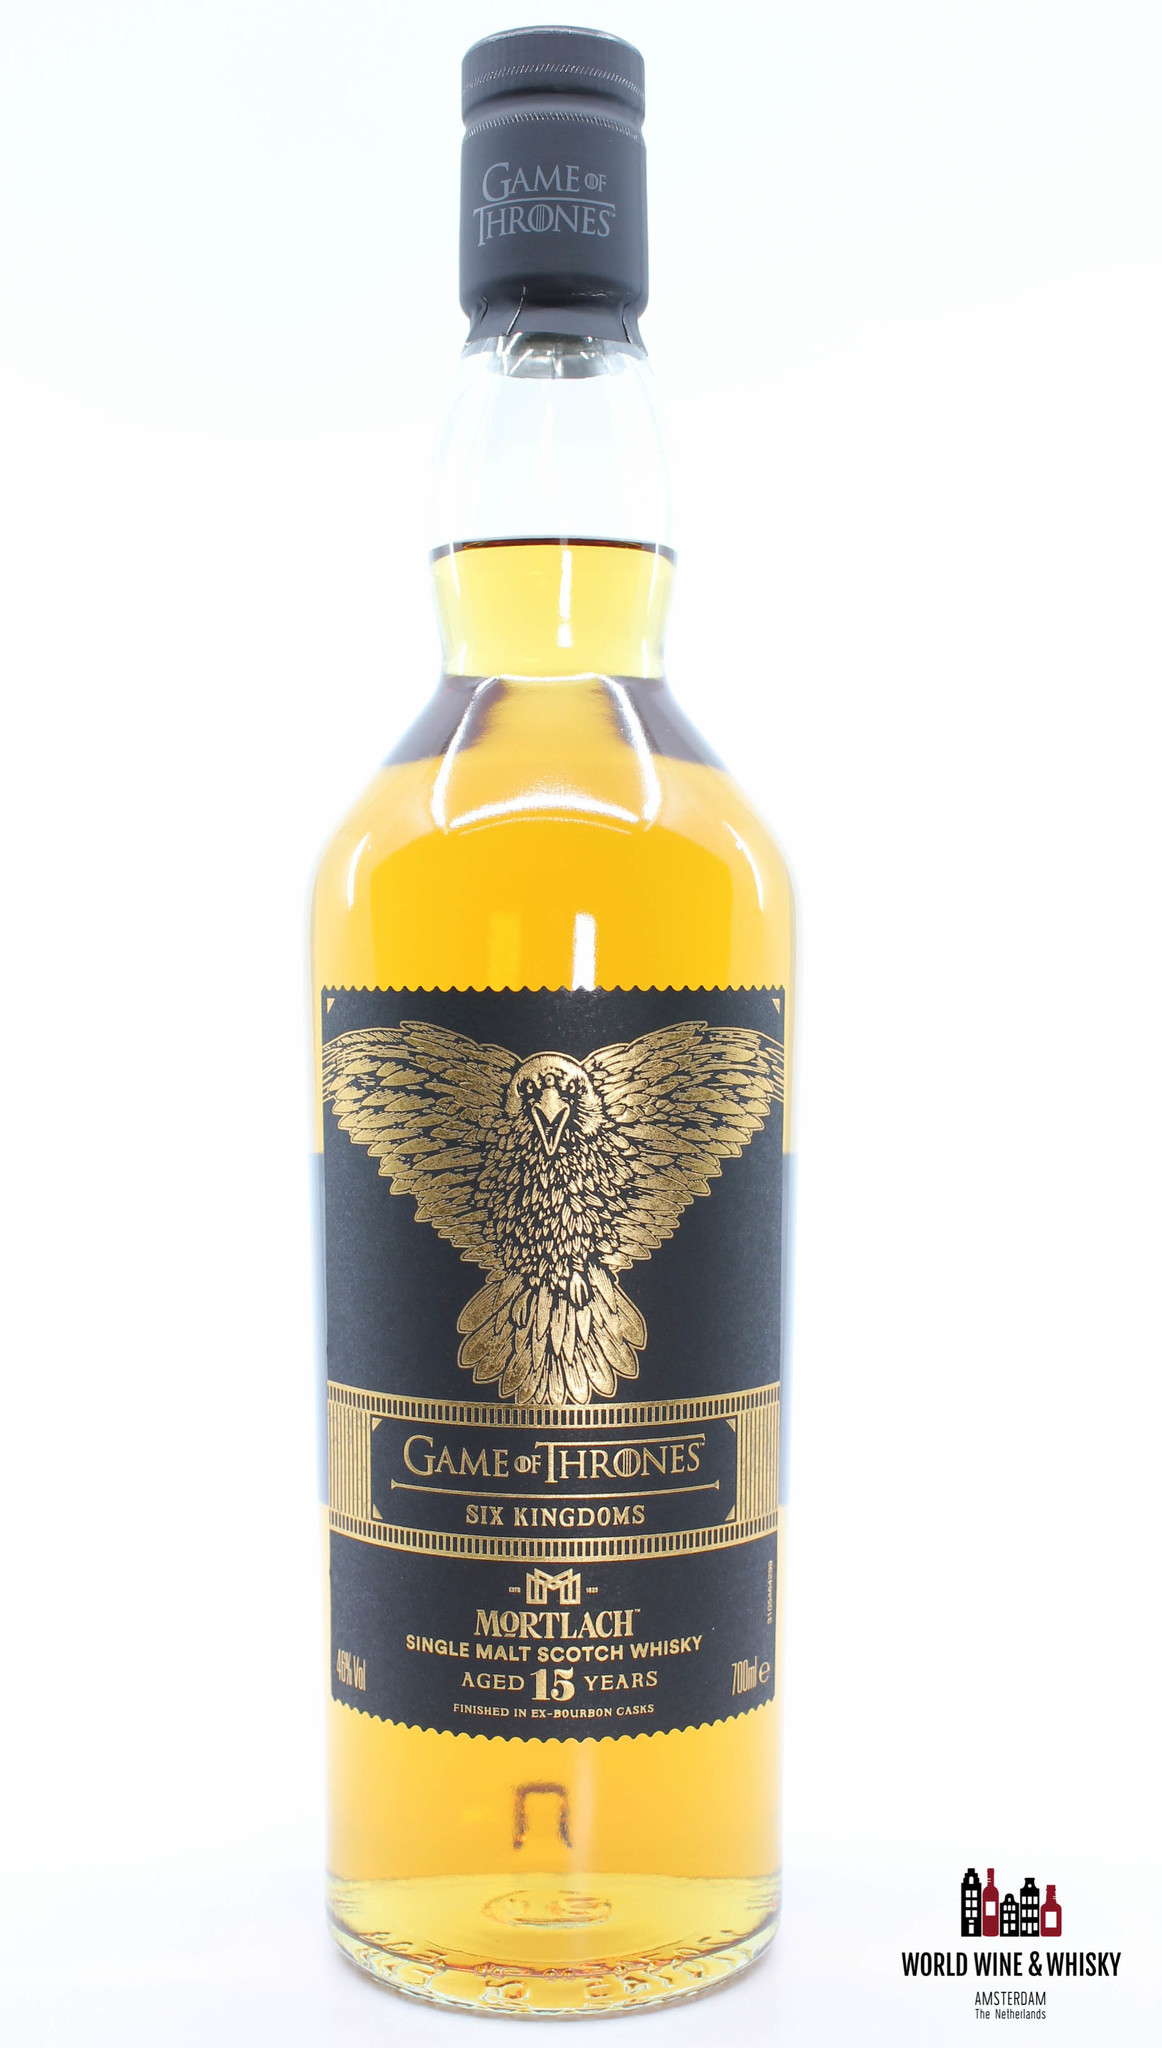 Mortlach Mortlach 15 Years Old 2019 - Game of Thrones - Six Kingdoms 46%